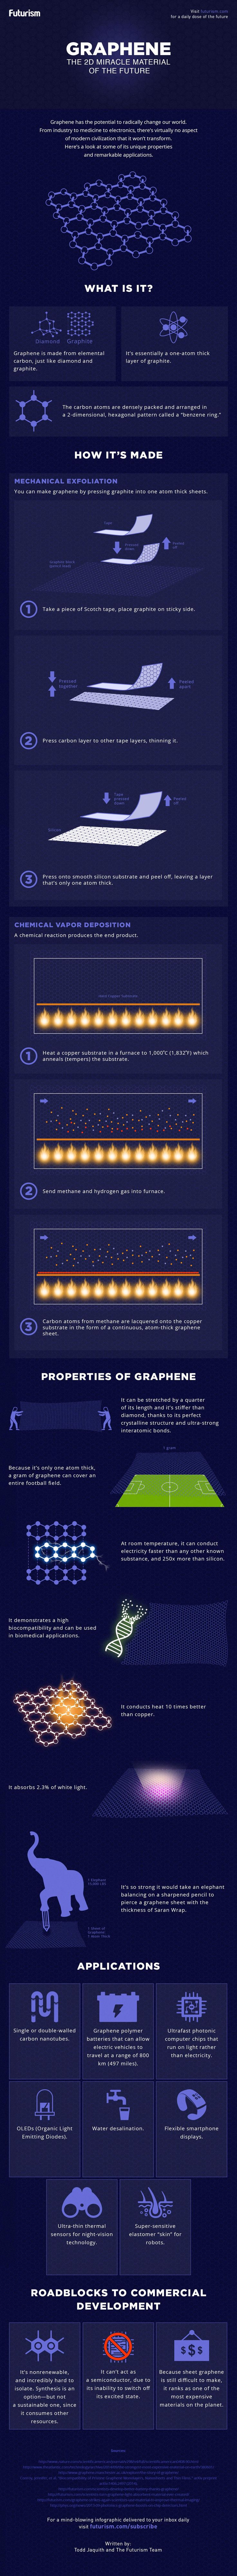 Graphene could lead to major advancements in electric car batteries, robotic skin, and even water desalination.   But what is it, and why hasn't it changed the world yet? http://futurism.com/images/graphene-the-wonder-material-of-the-future-infographic/?utm_campaign=coschedule&utm_source=pinterest&utm_medium=Futurism&utm_content=Graphene%3A%20The%20Miracle%20Material%20of%20the%20Future%20%5BINFOGRAPHIC%5D